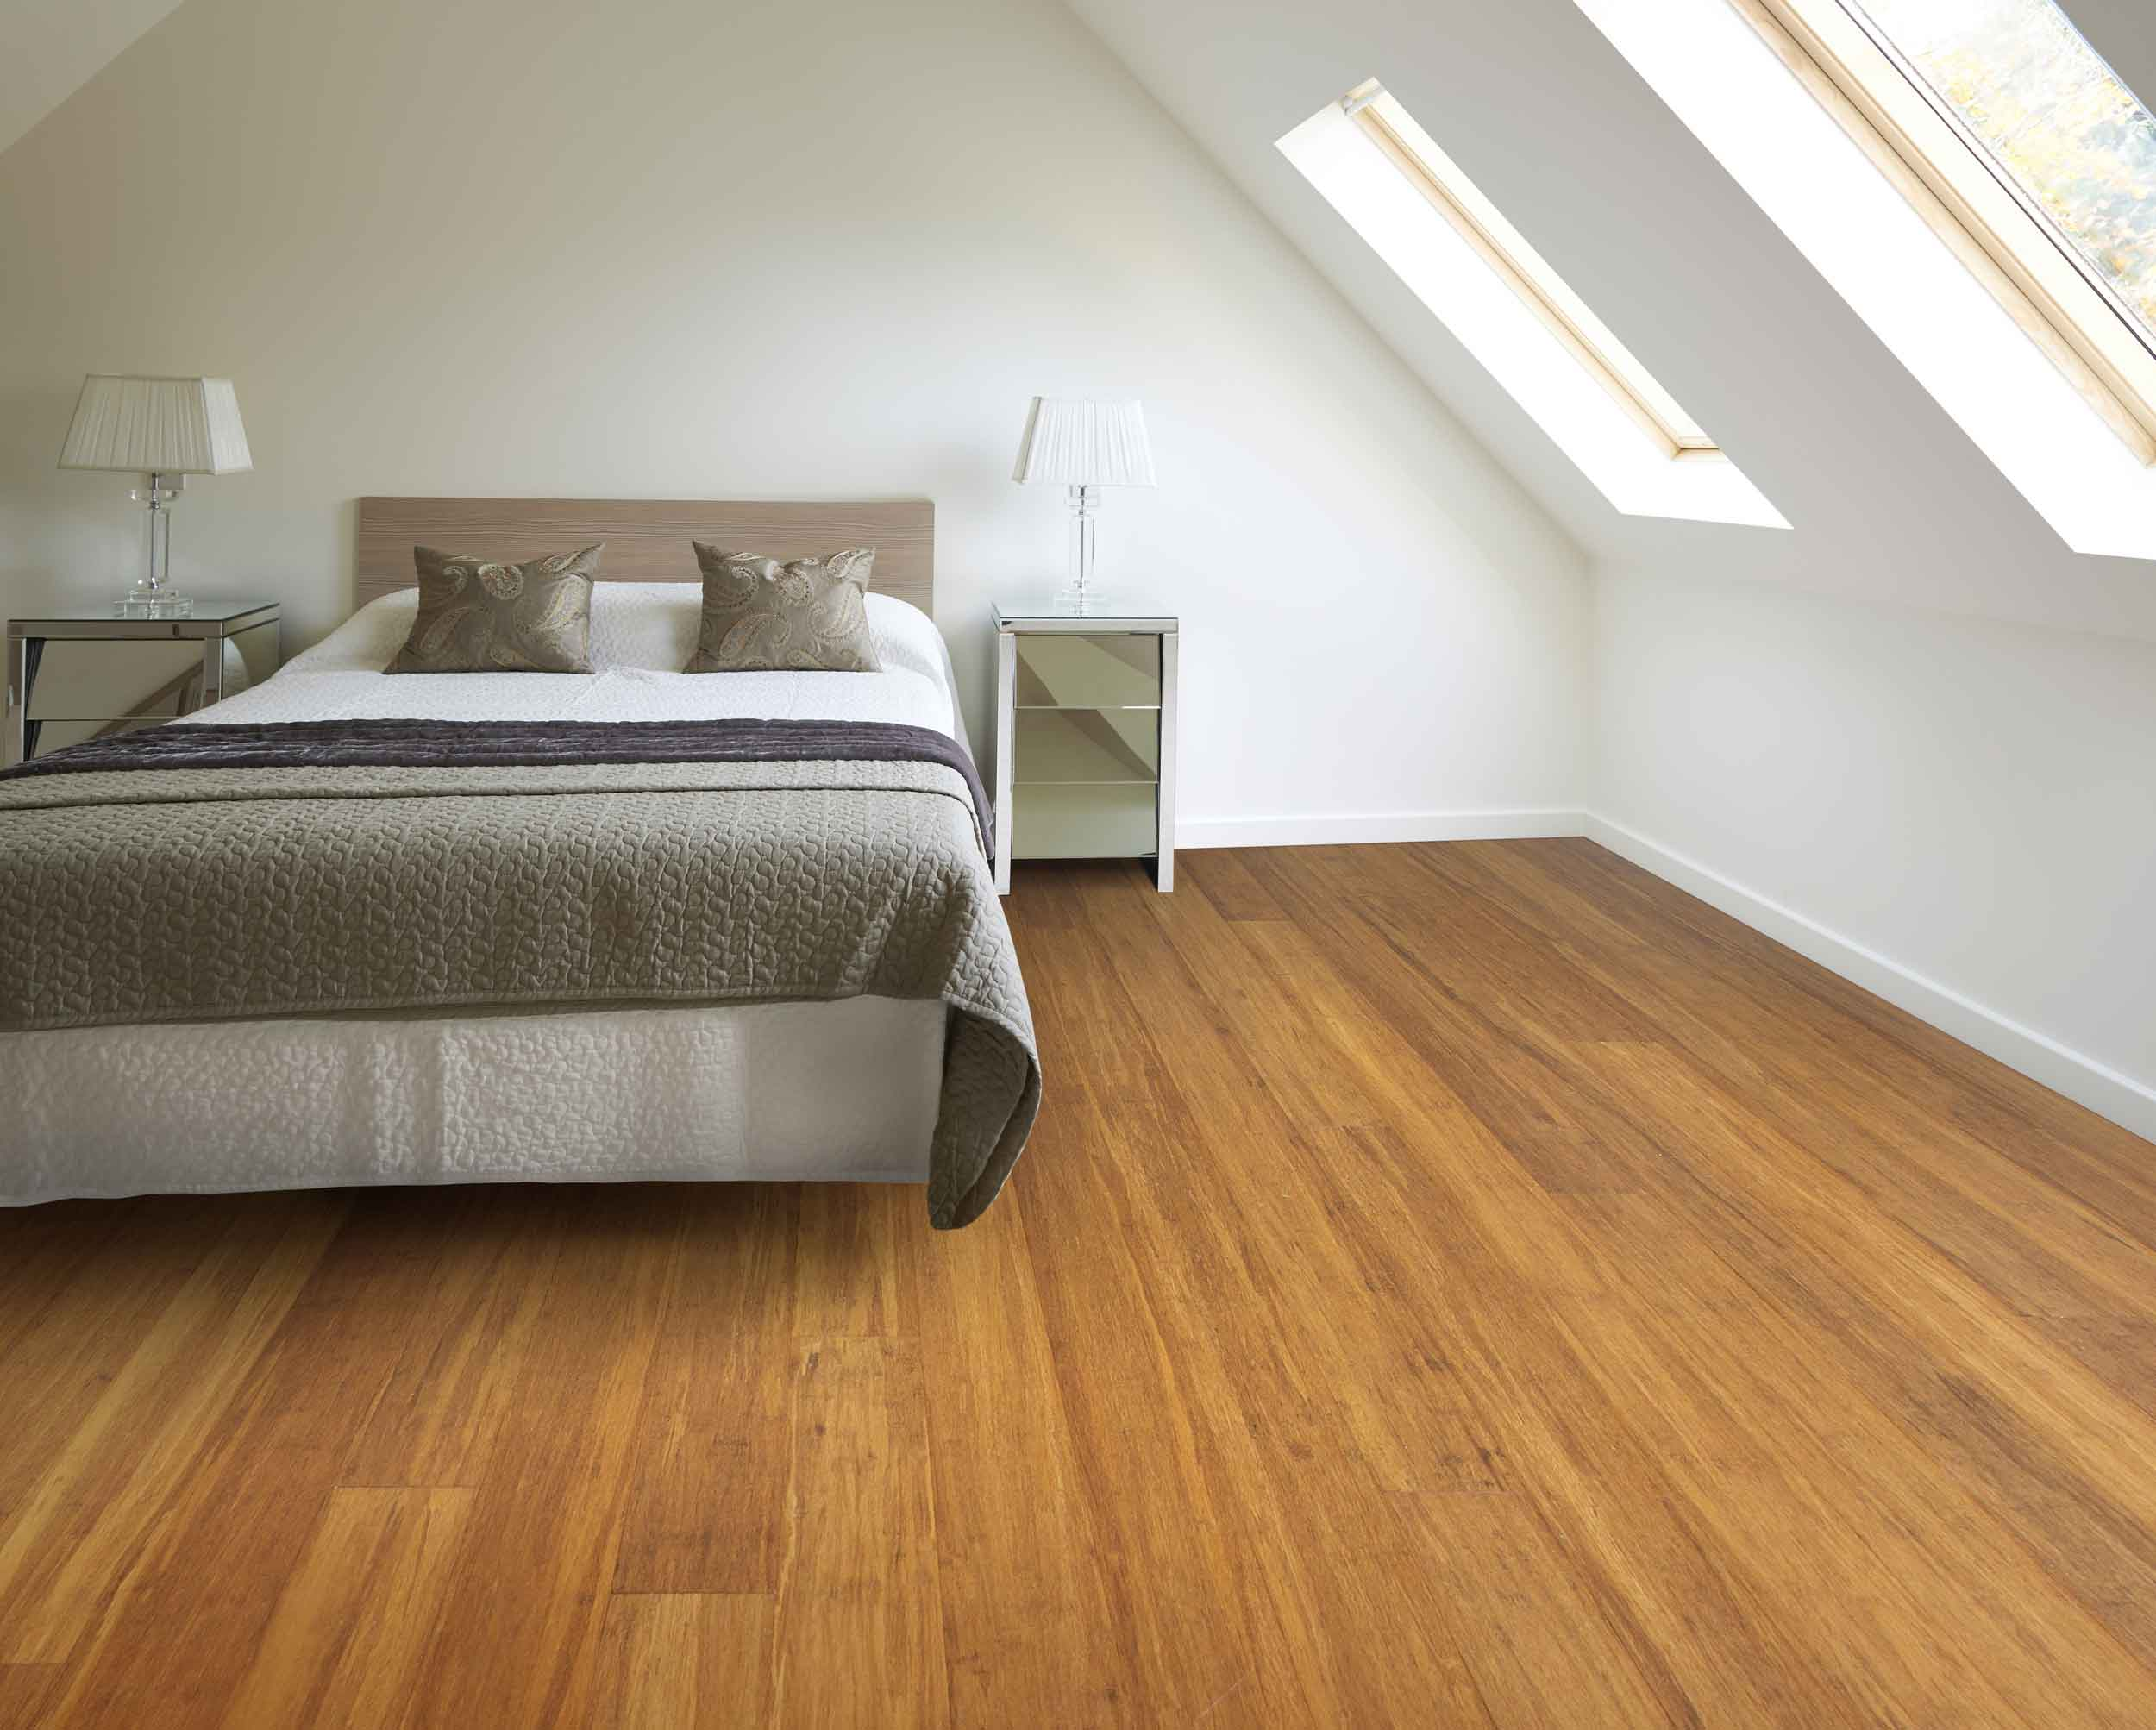 Top 10 benefits of bamboo flooring